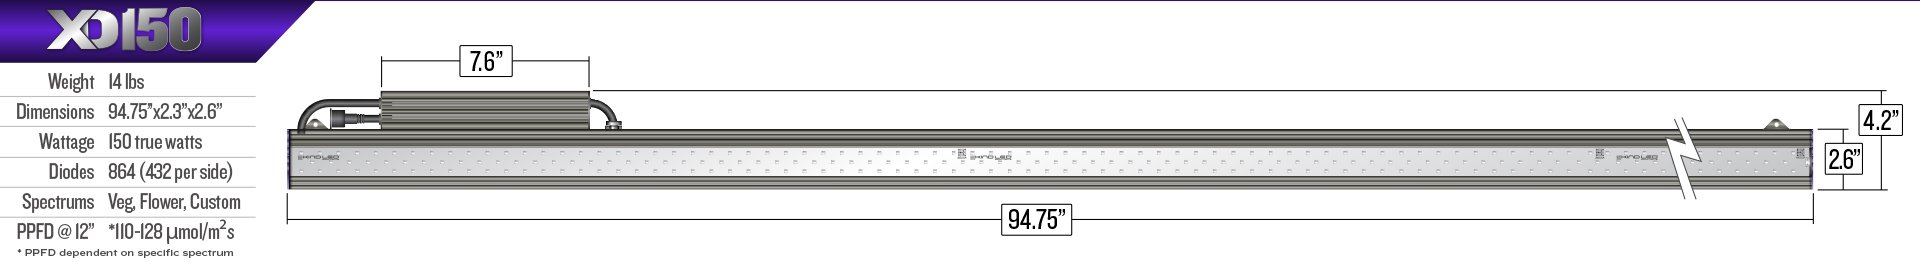 XD150_BAR_LIGHT_dimensions